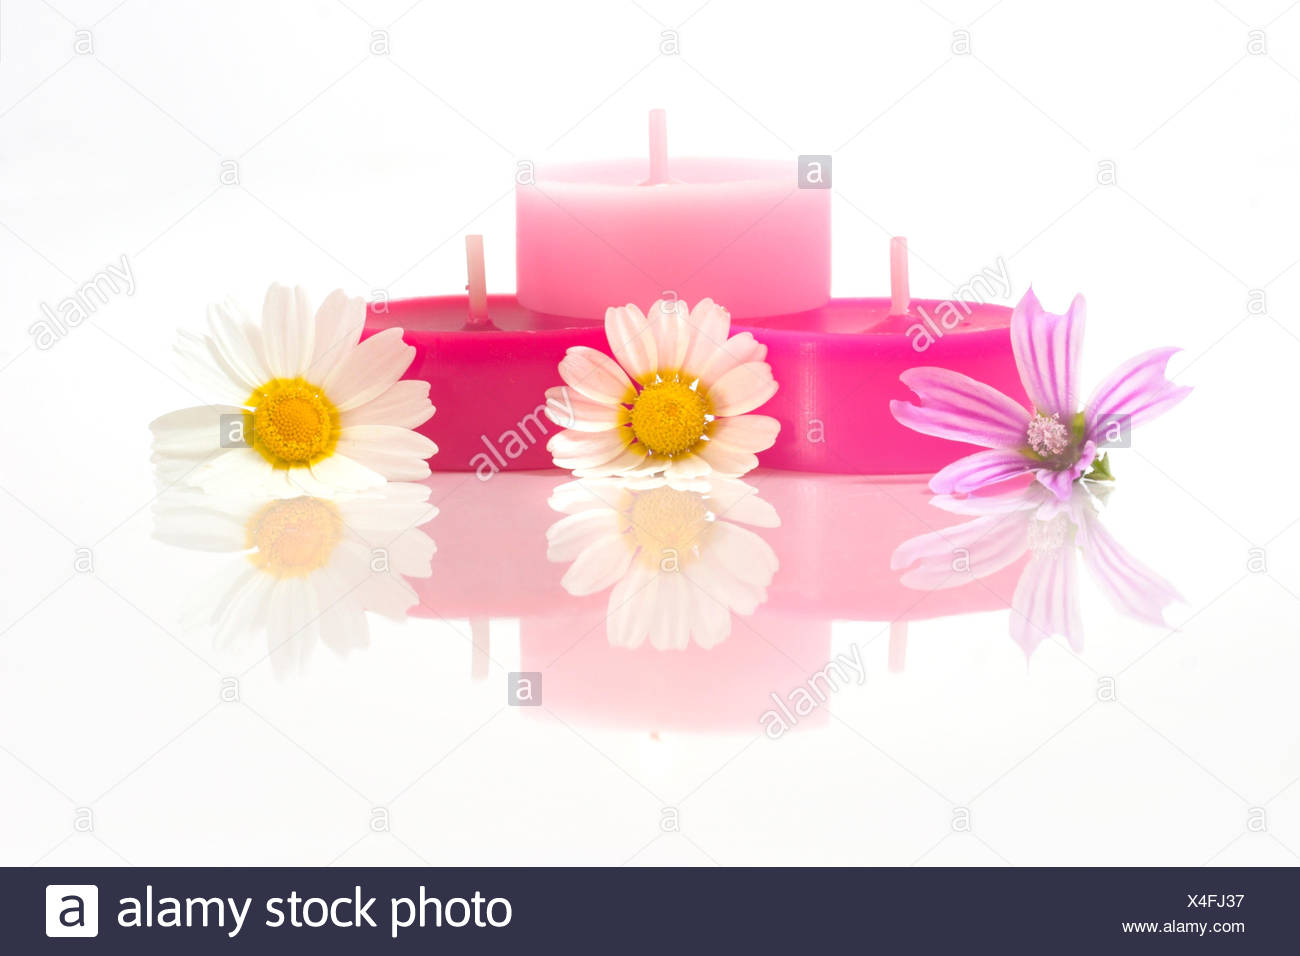 flower flowers plant candles daisy spiritual fragrance bathing